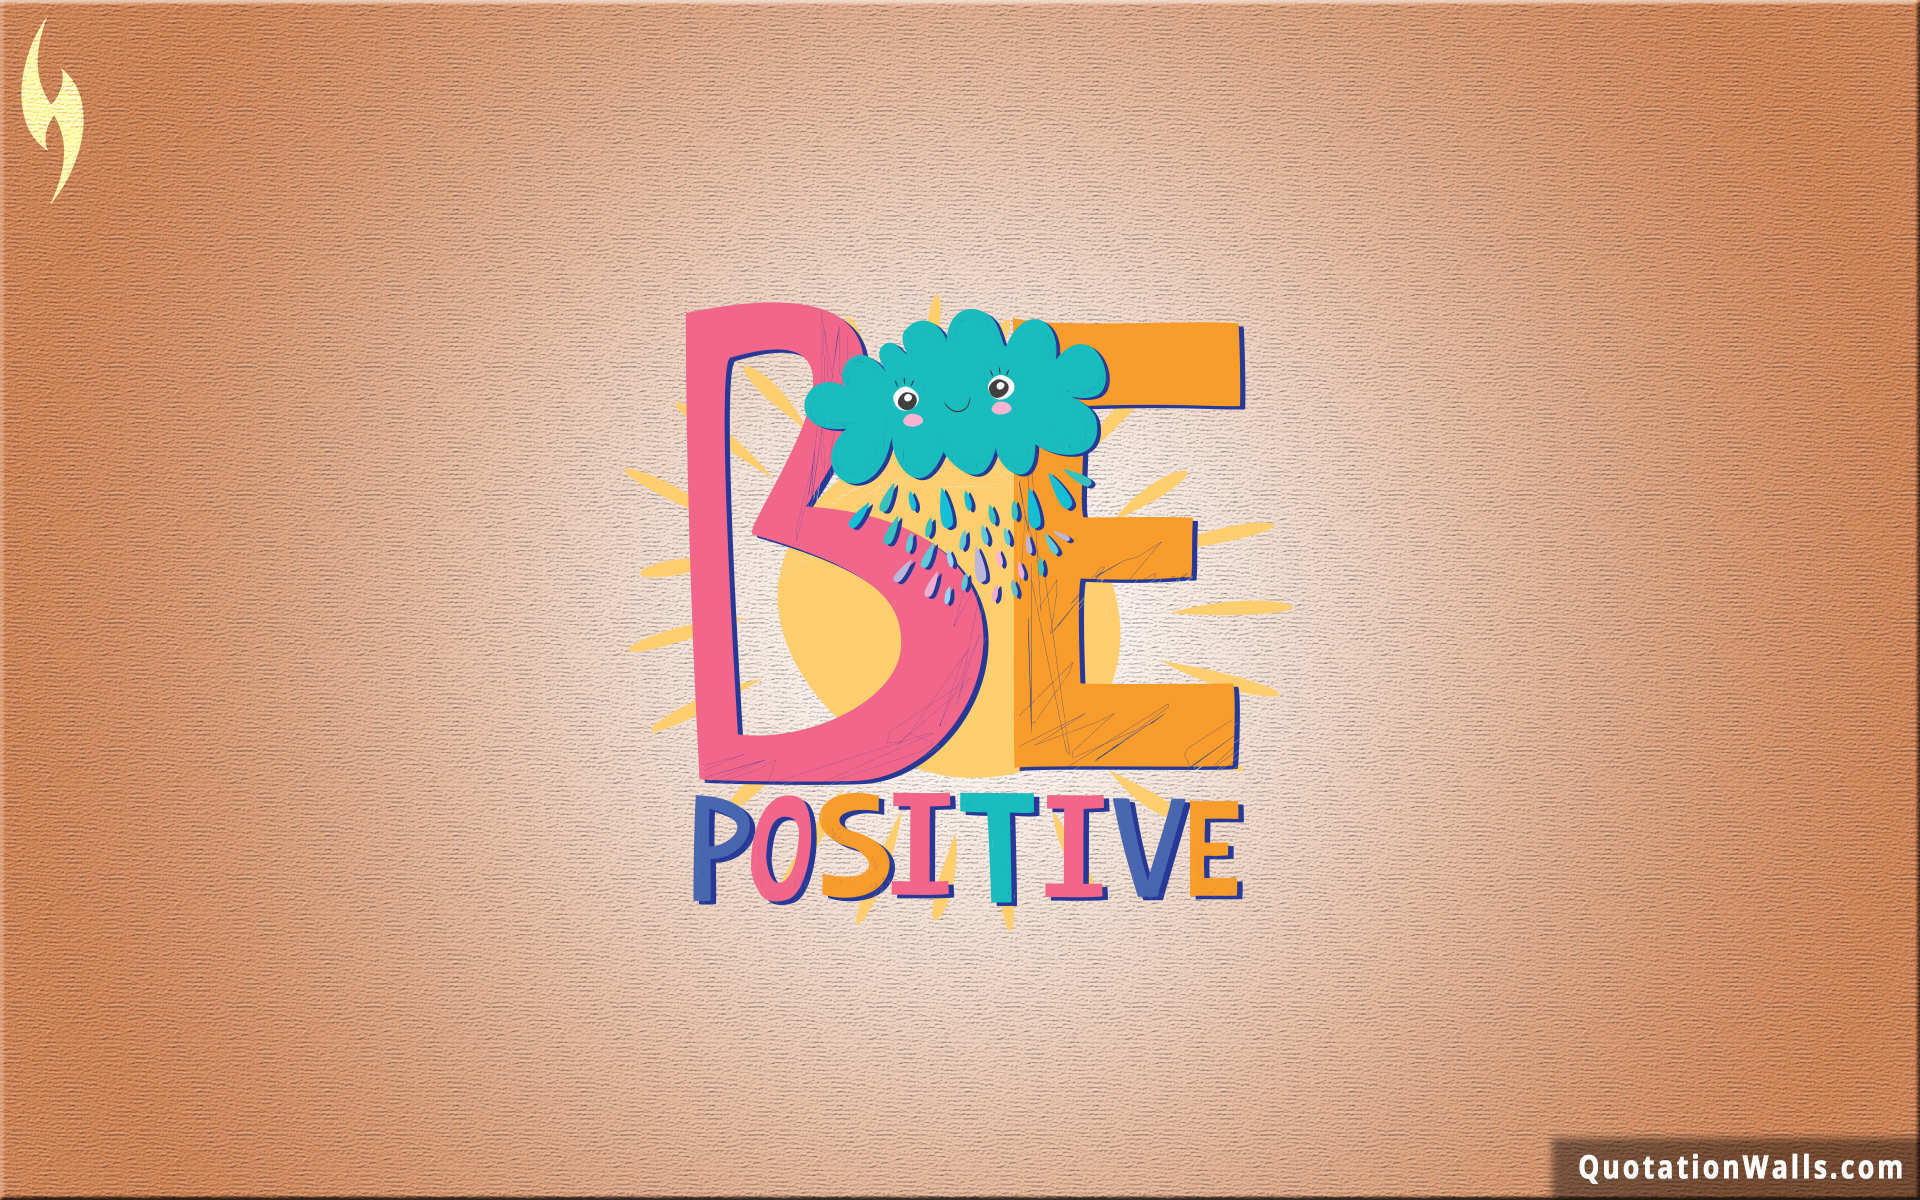 Positive Wallpapers